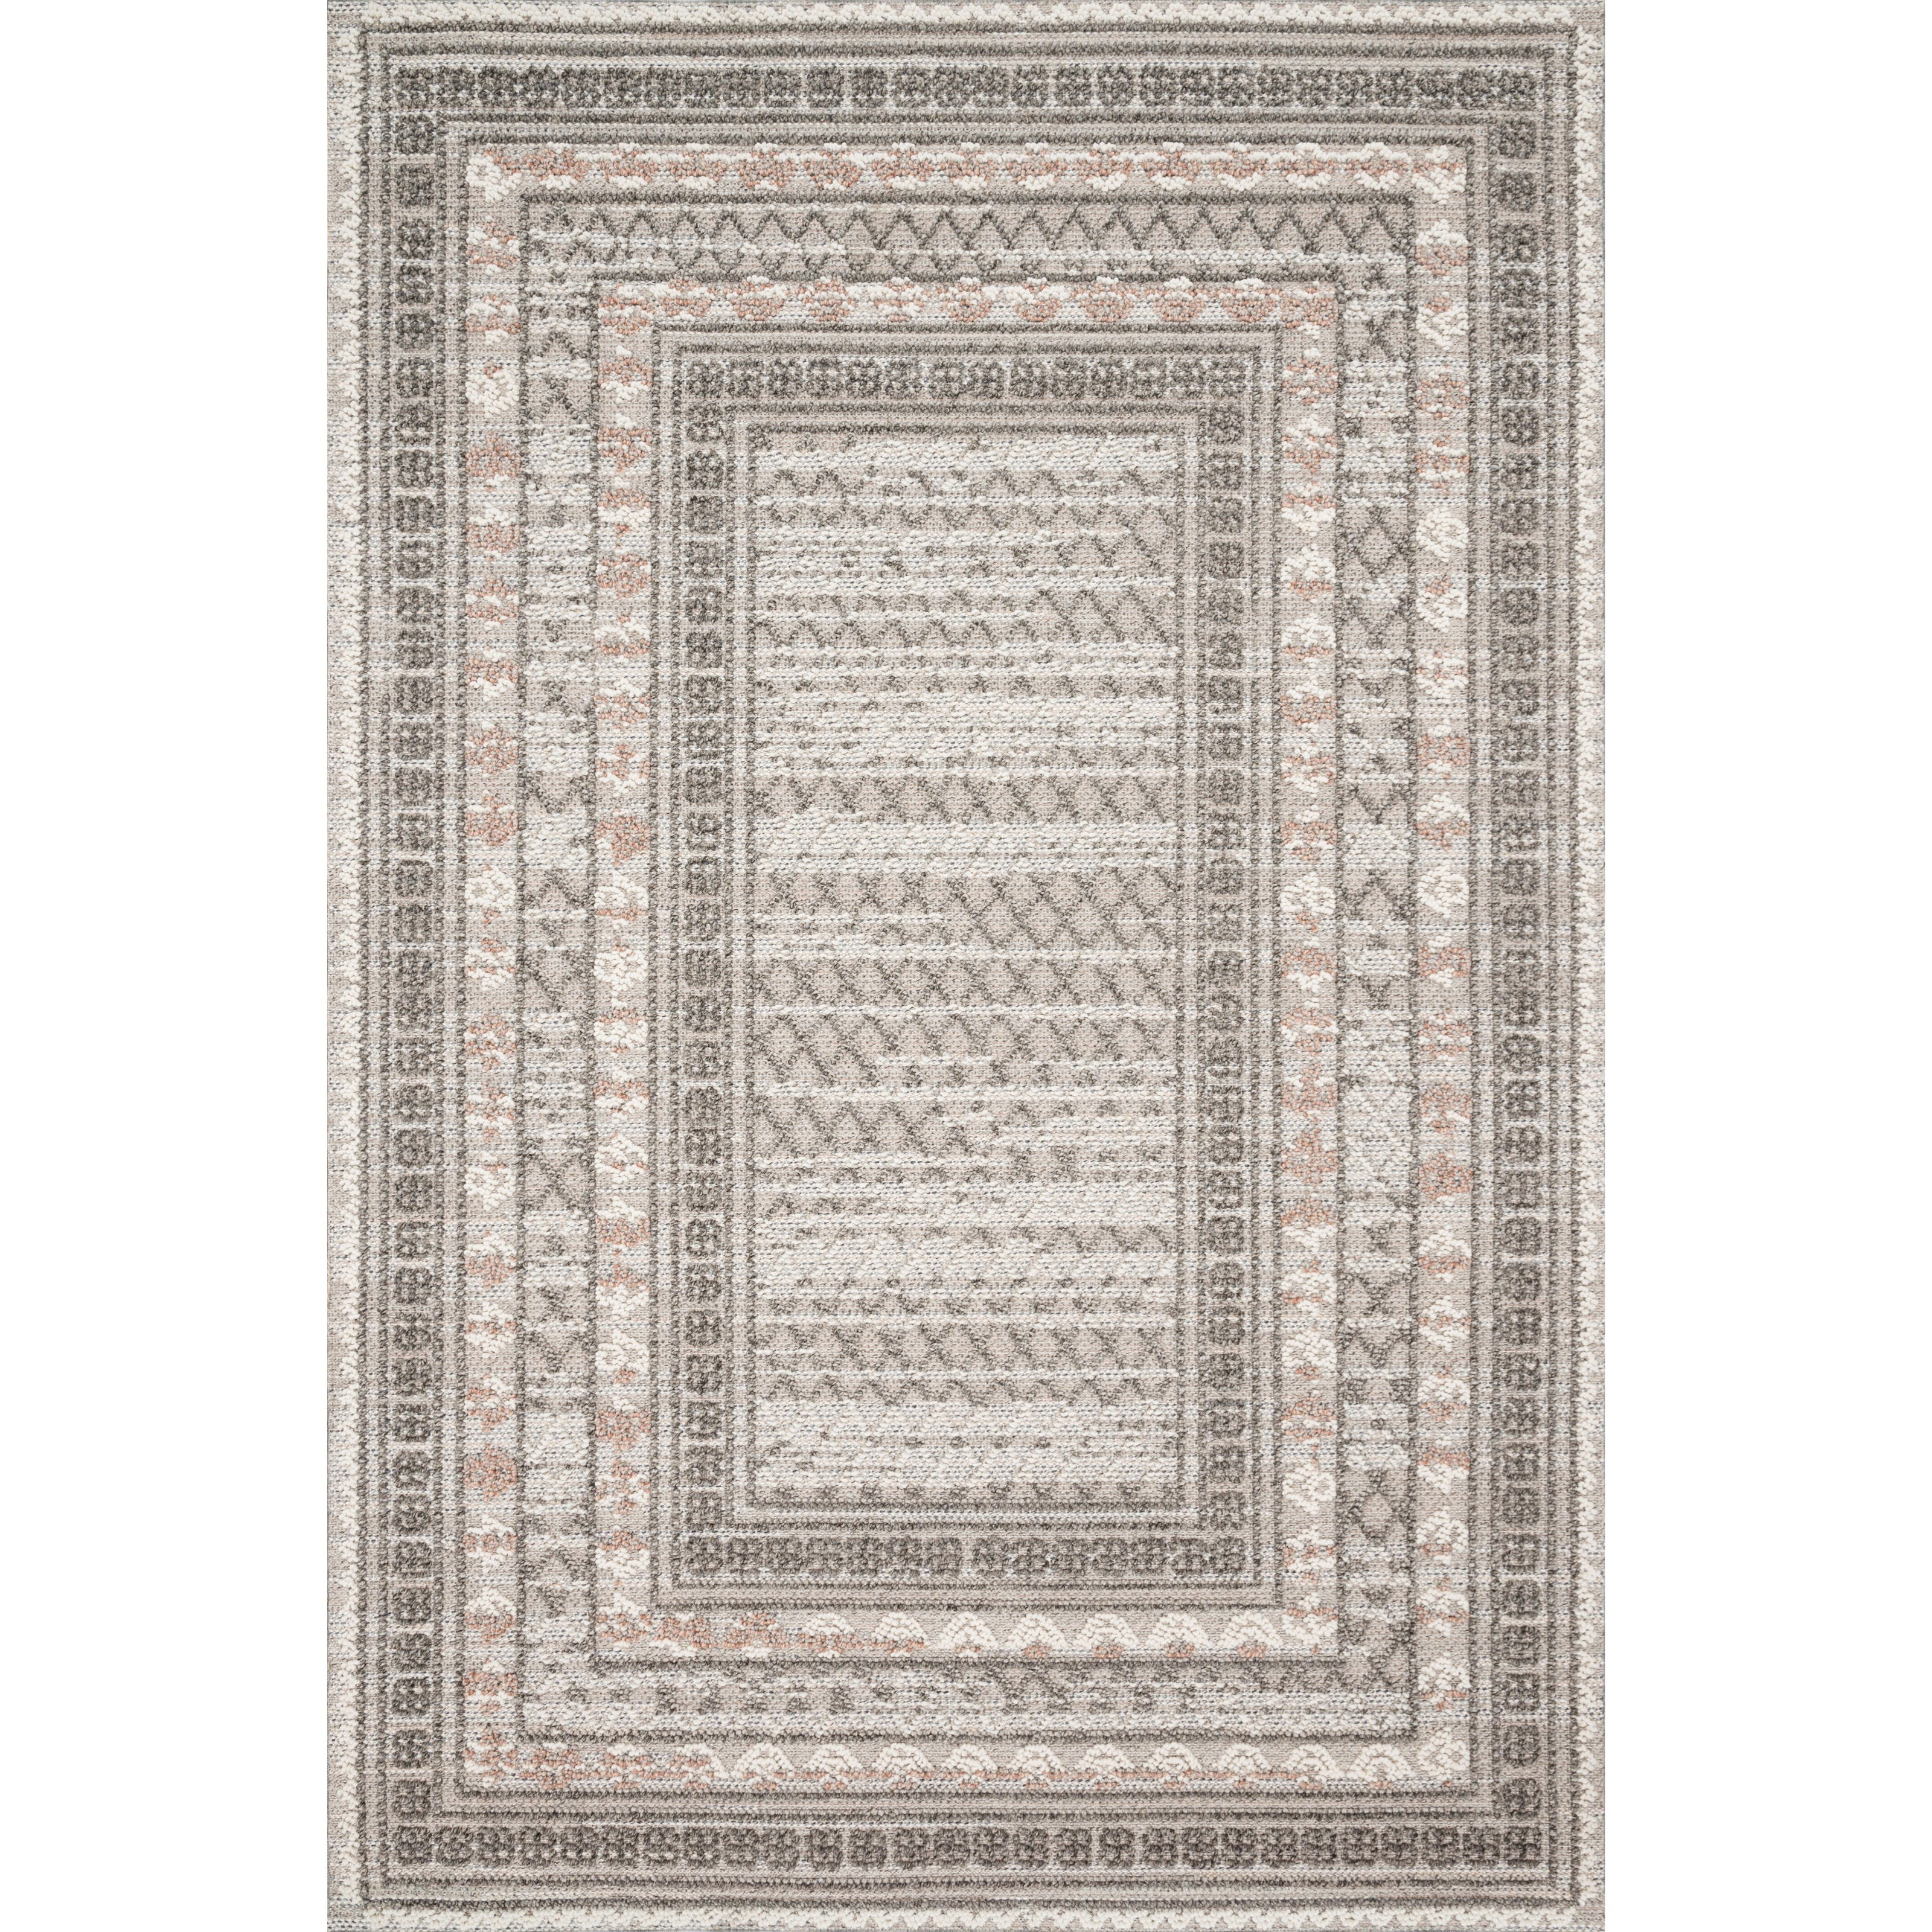 "Cole 7'10"" x 10'1"" Grey / Multi Rug by Loloi Rugs at Sprintz Furniture"